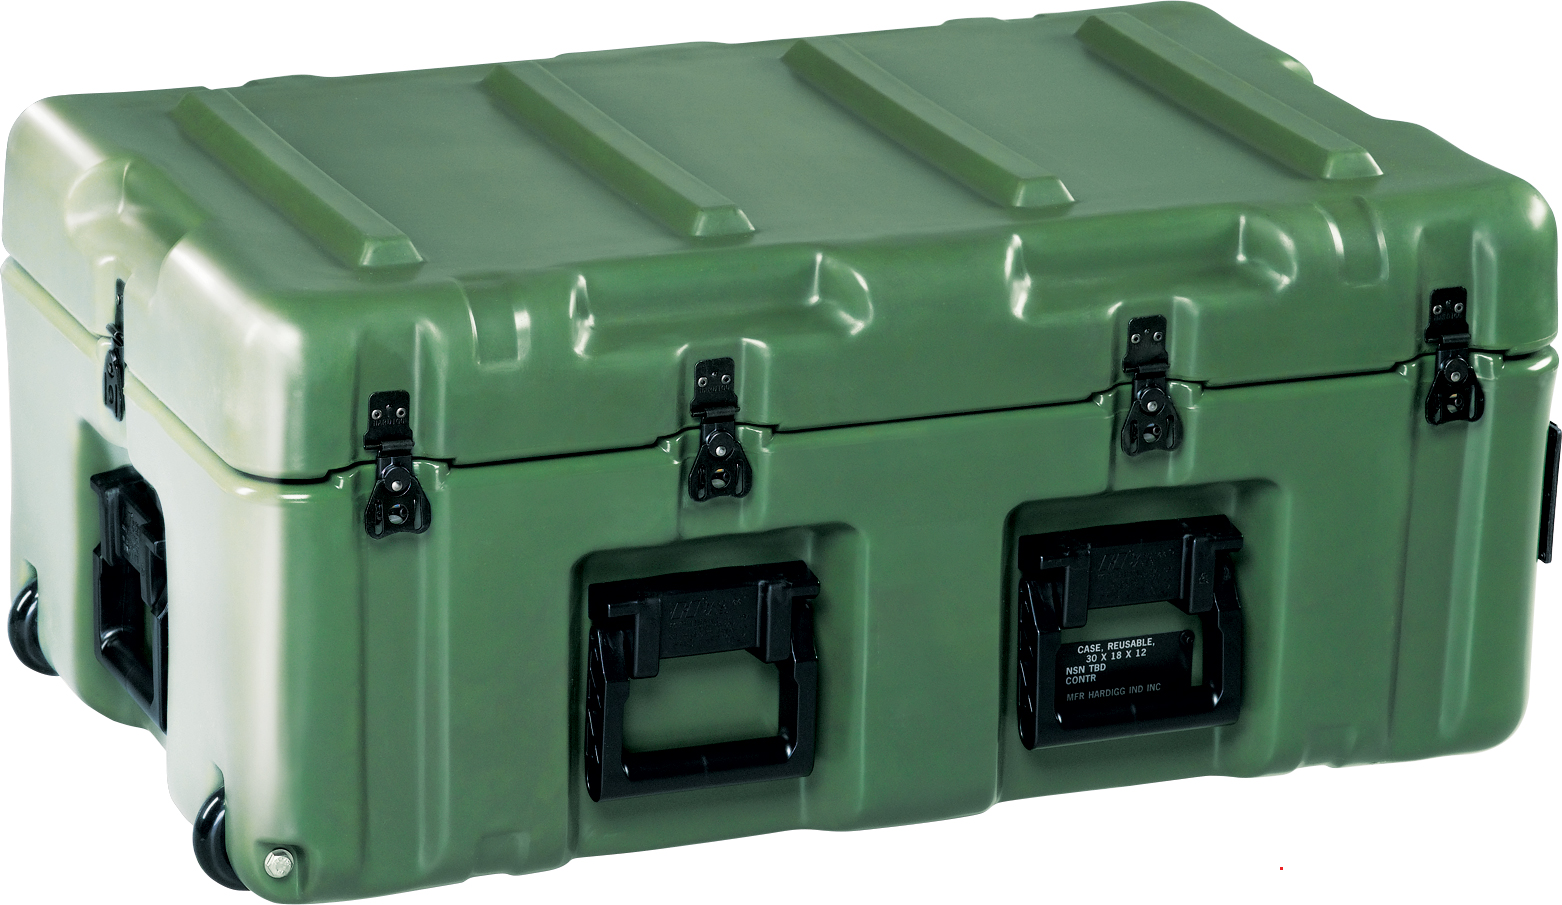 pelican peli products 472 MEDCHEST4 military medical supply box chest